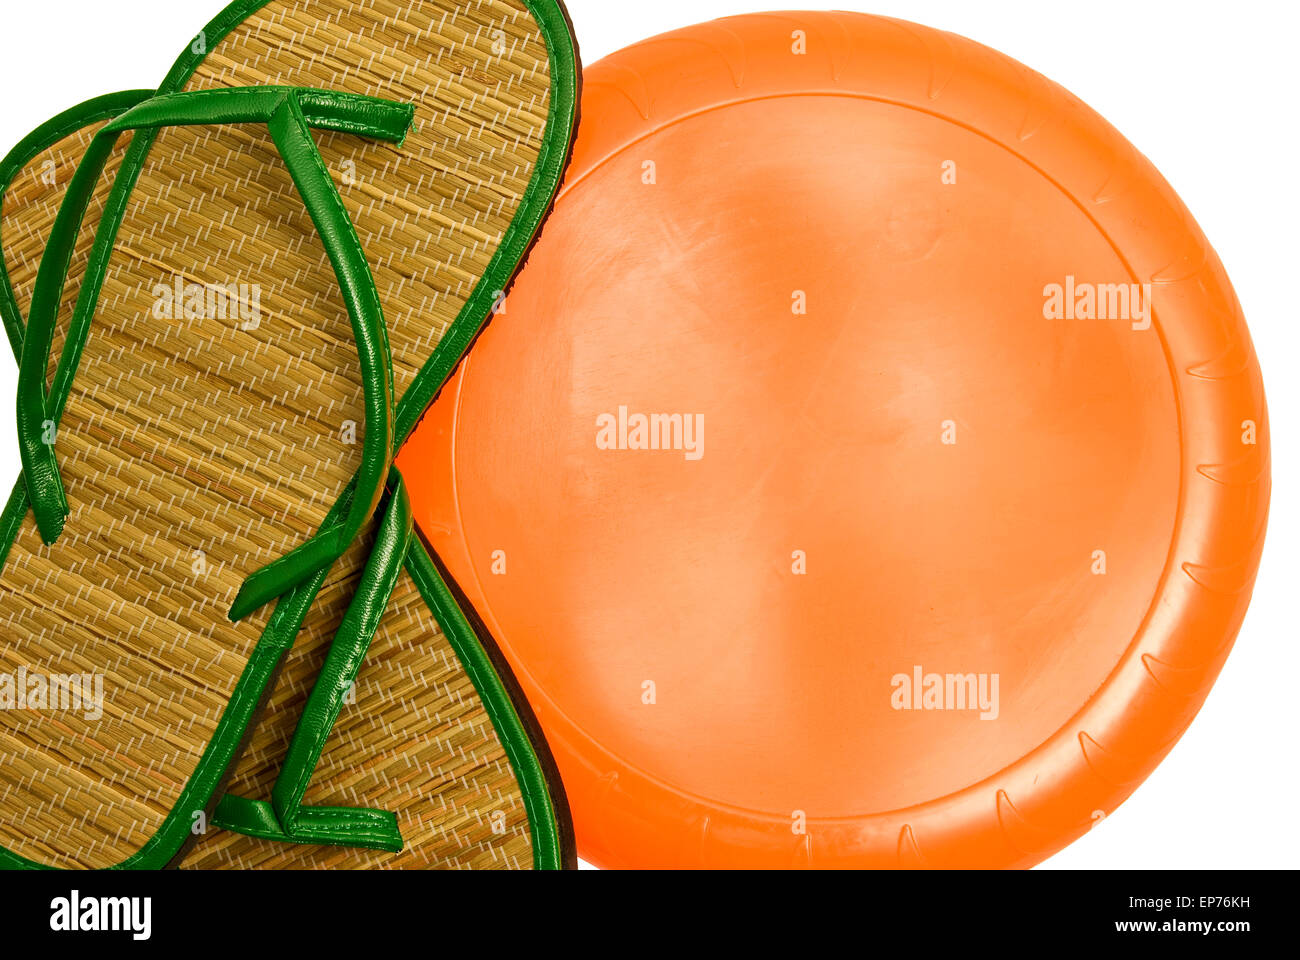 813f81fd0 Summer Sandals With Frisbee Disc and Copy Space Isolated on white. - Stock  Image